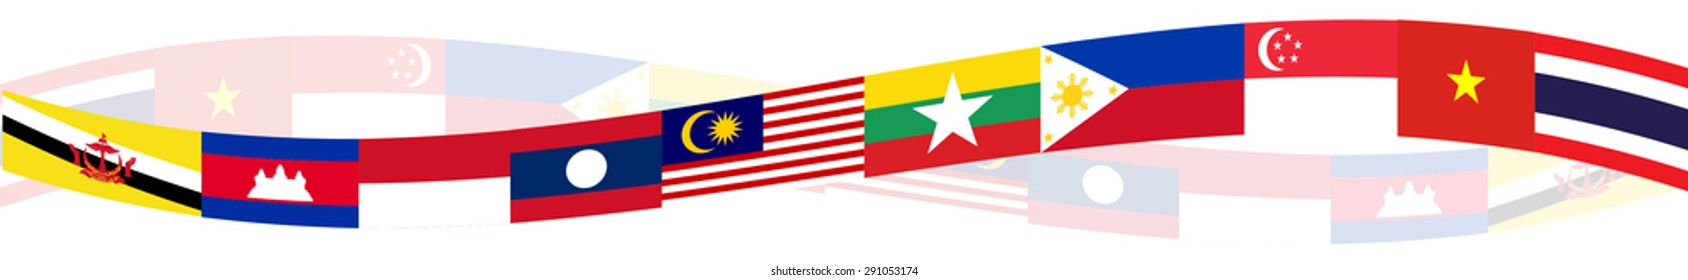 ASEAN Economic Community, AEC business forum, for design present template header background in vector